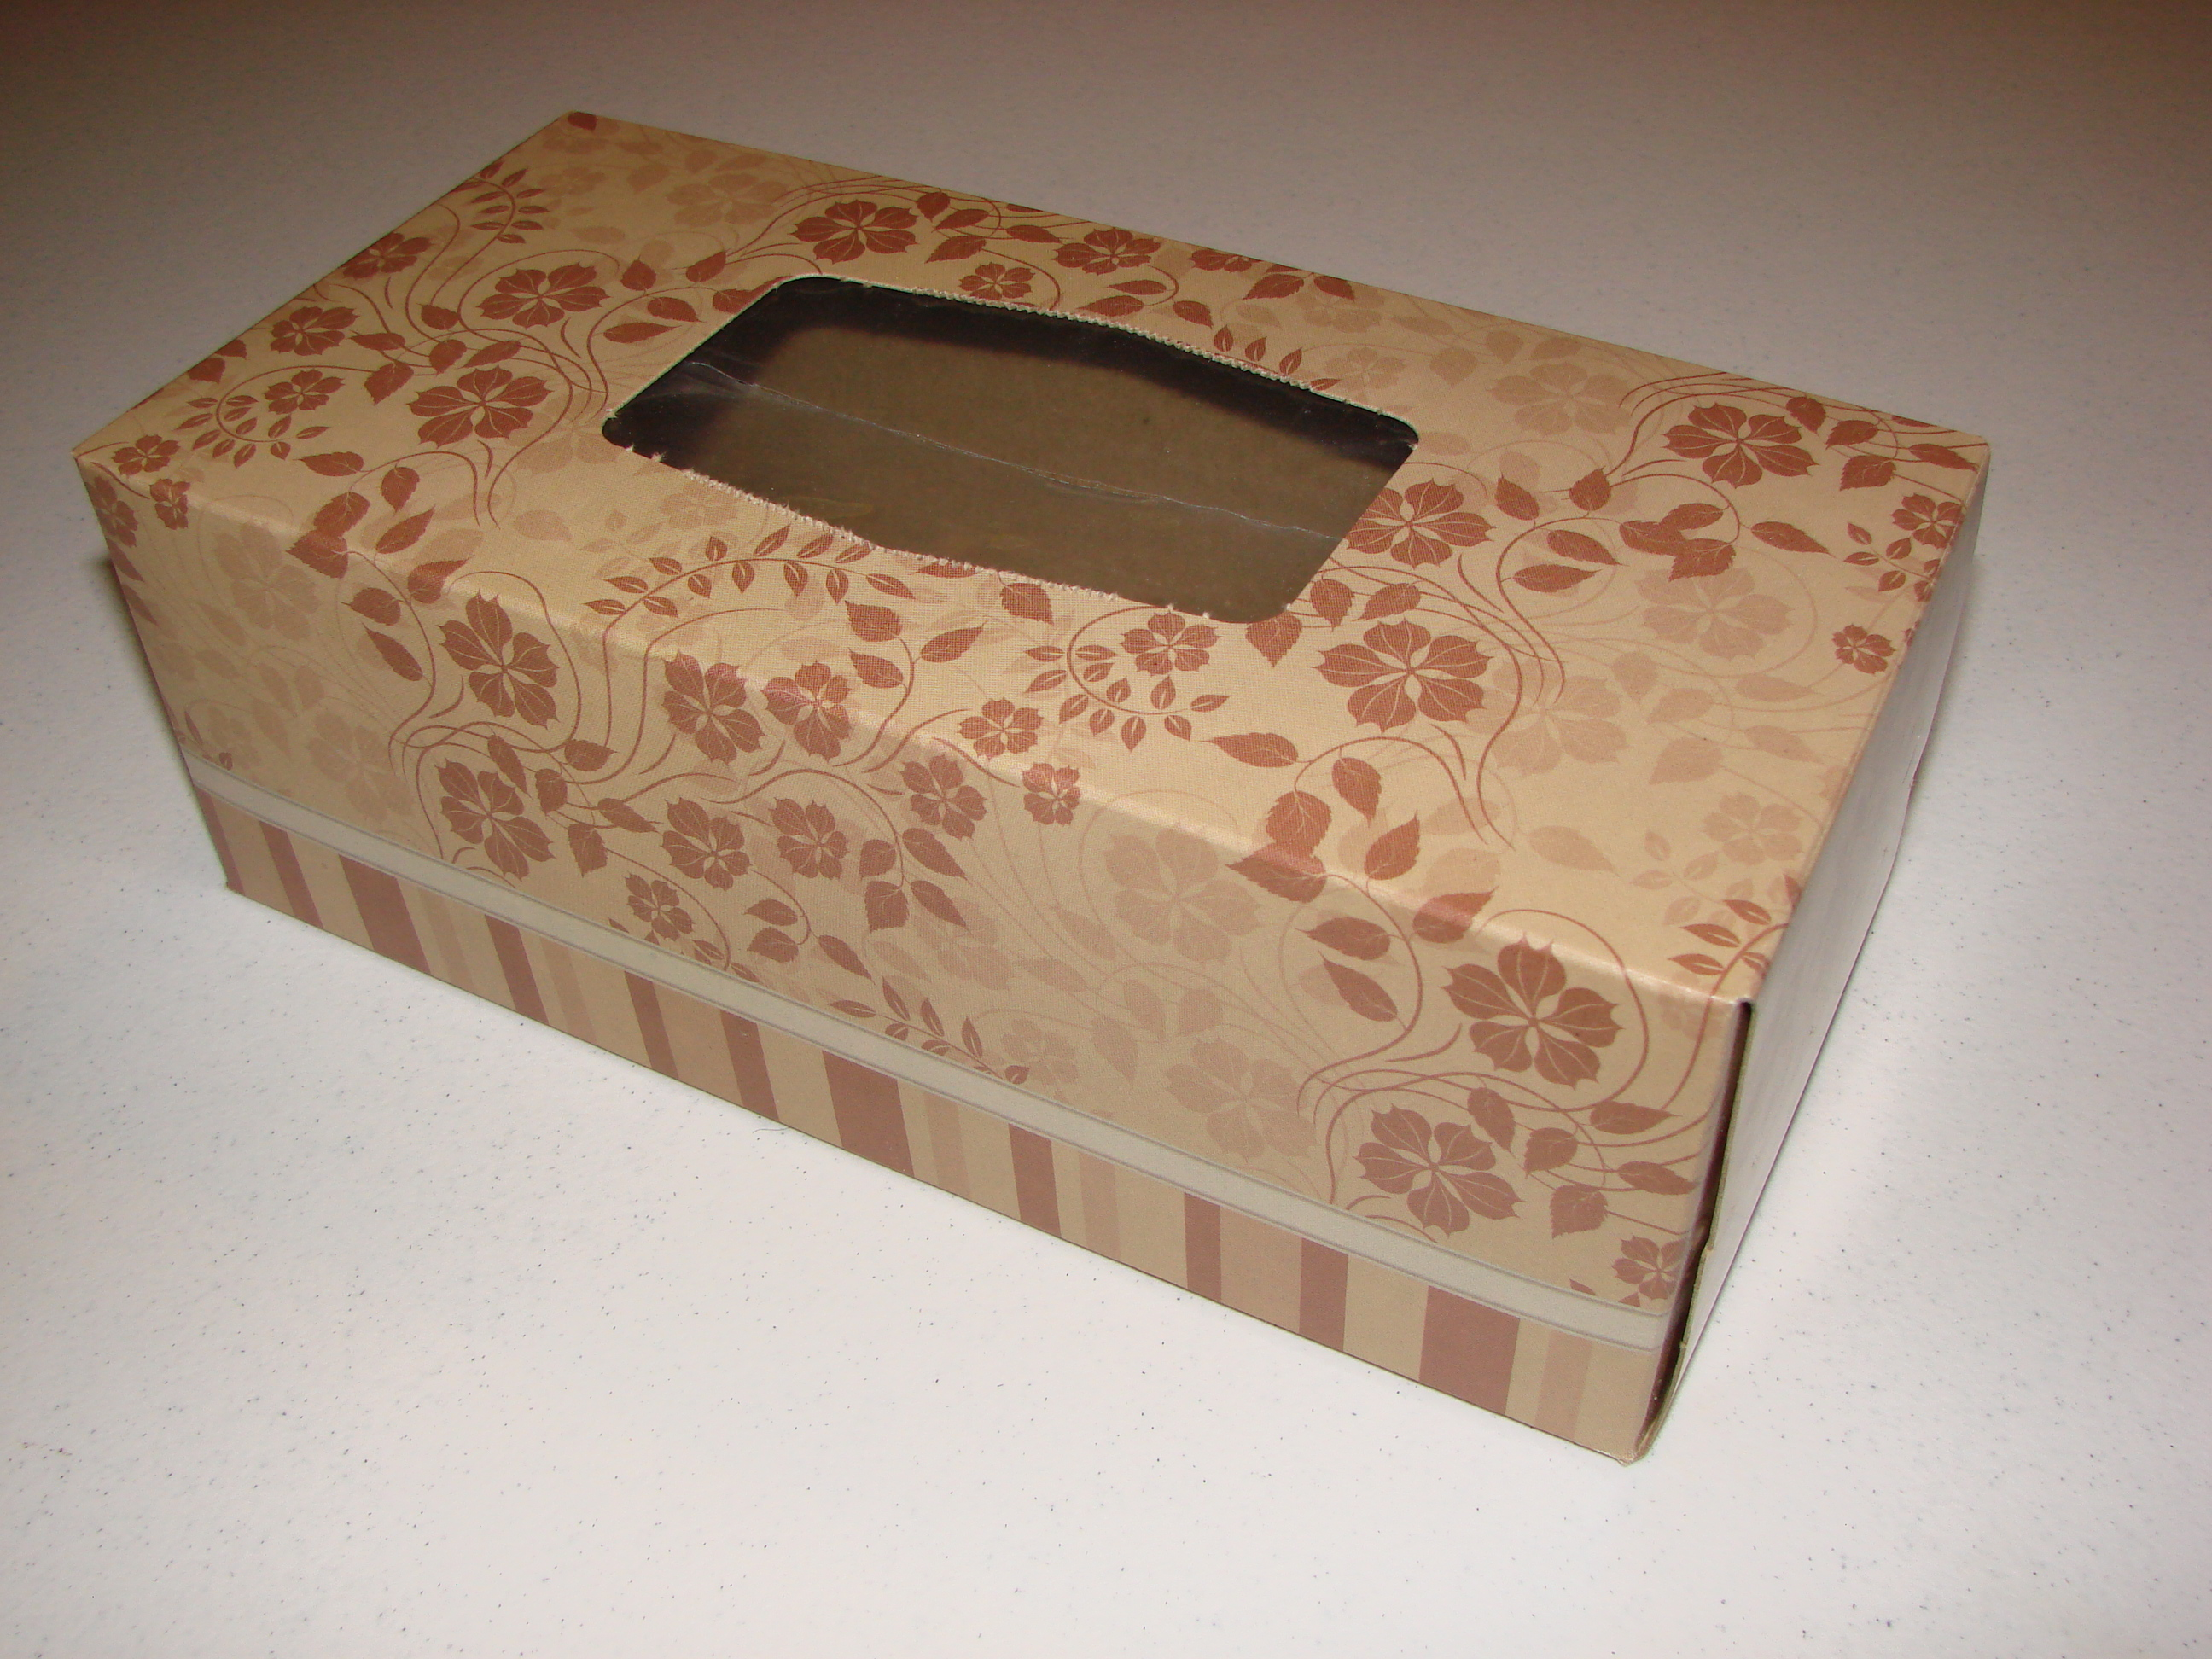 A Tissue Box! Of Course ...